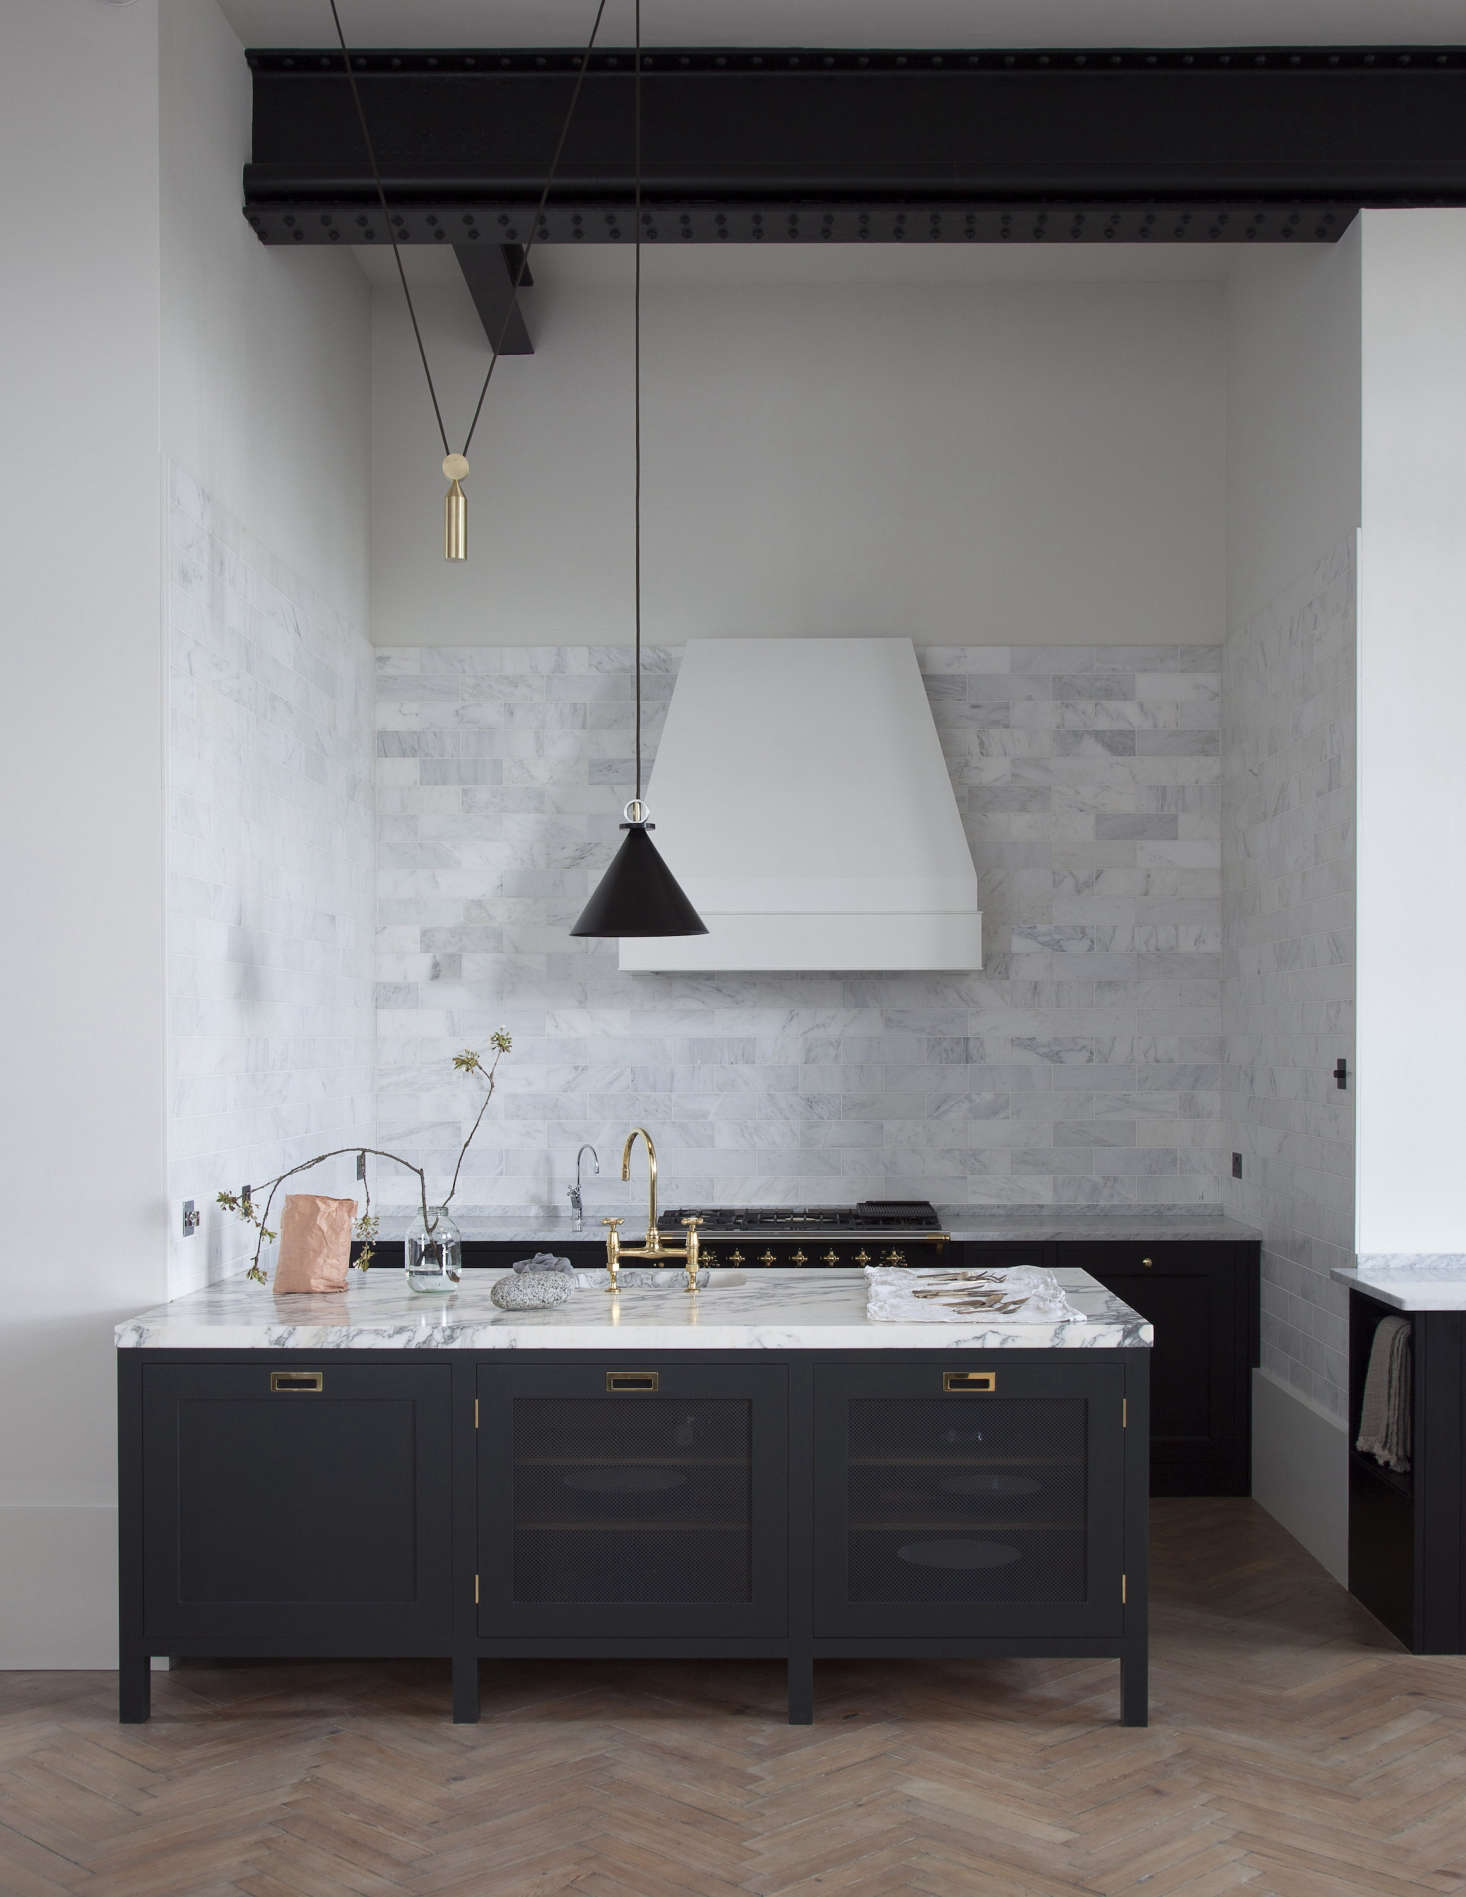 Carrara and arabescatto marble in a Plain English kitchen; seePlain English: Bespoke British Kitchen Design Comes to the US.